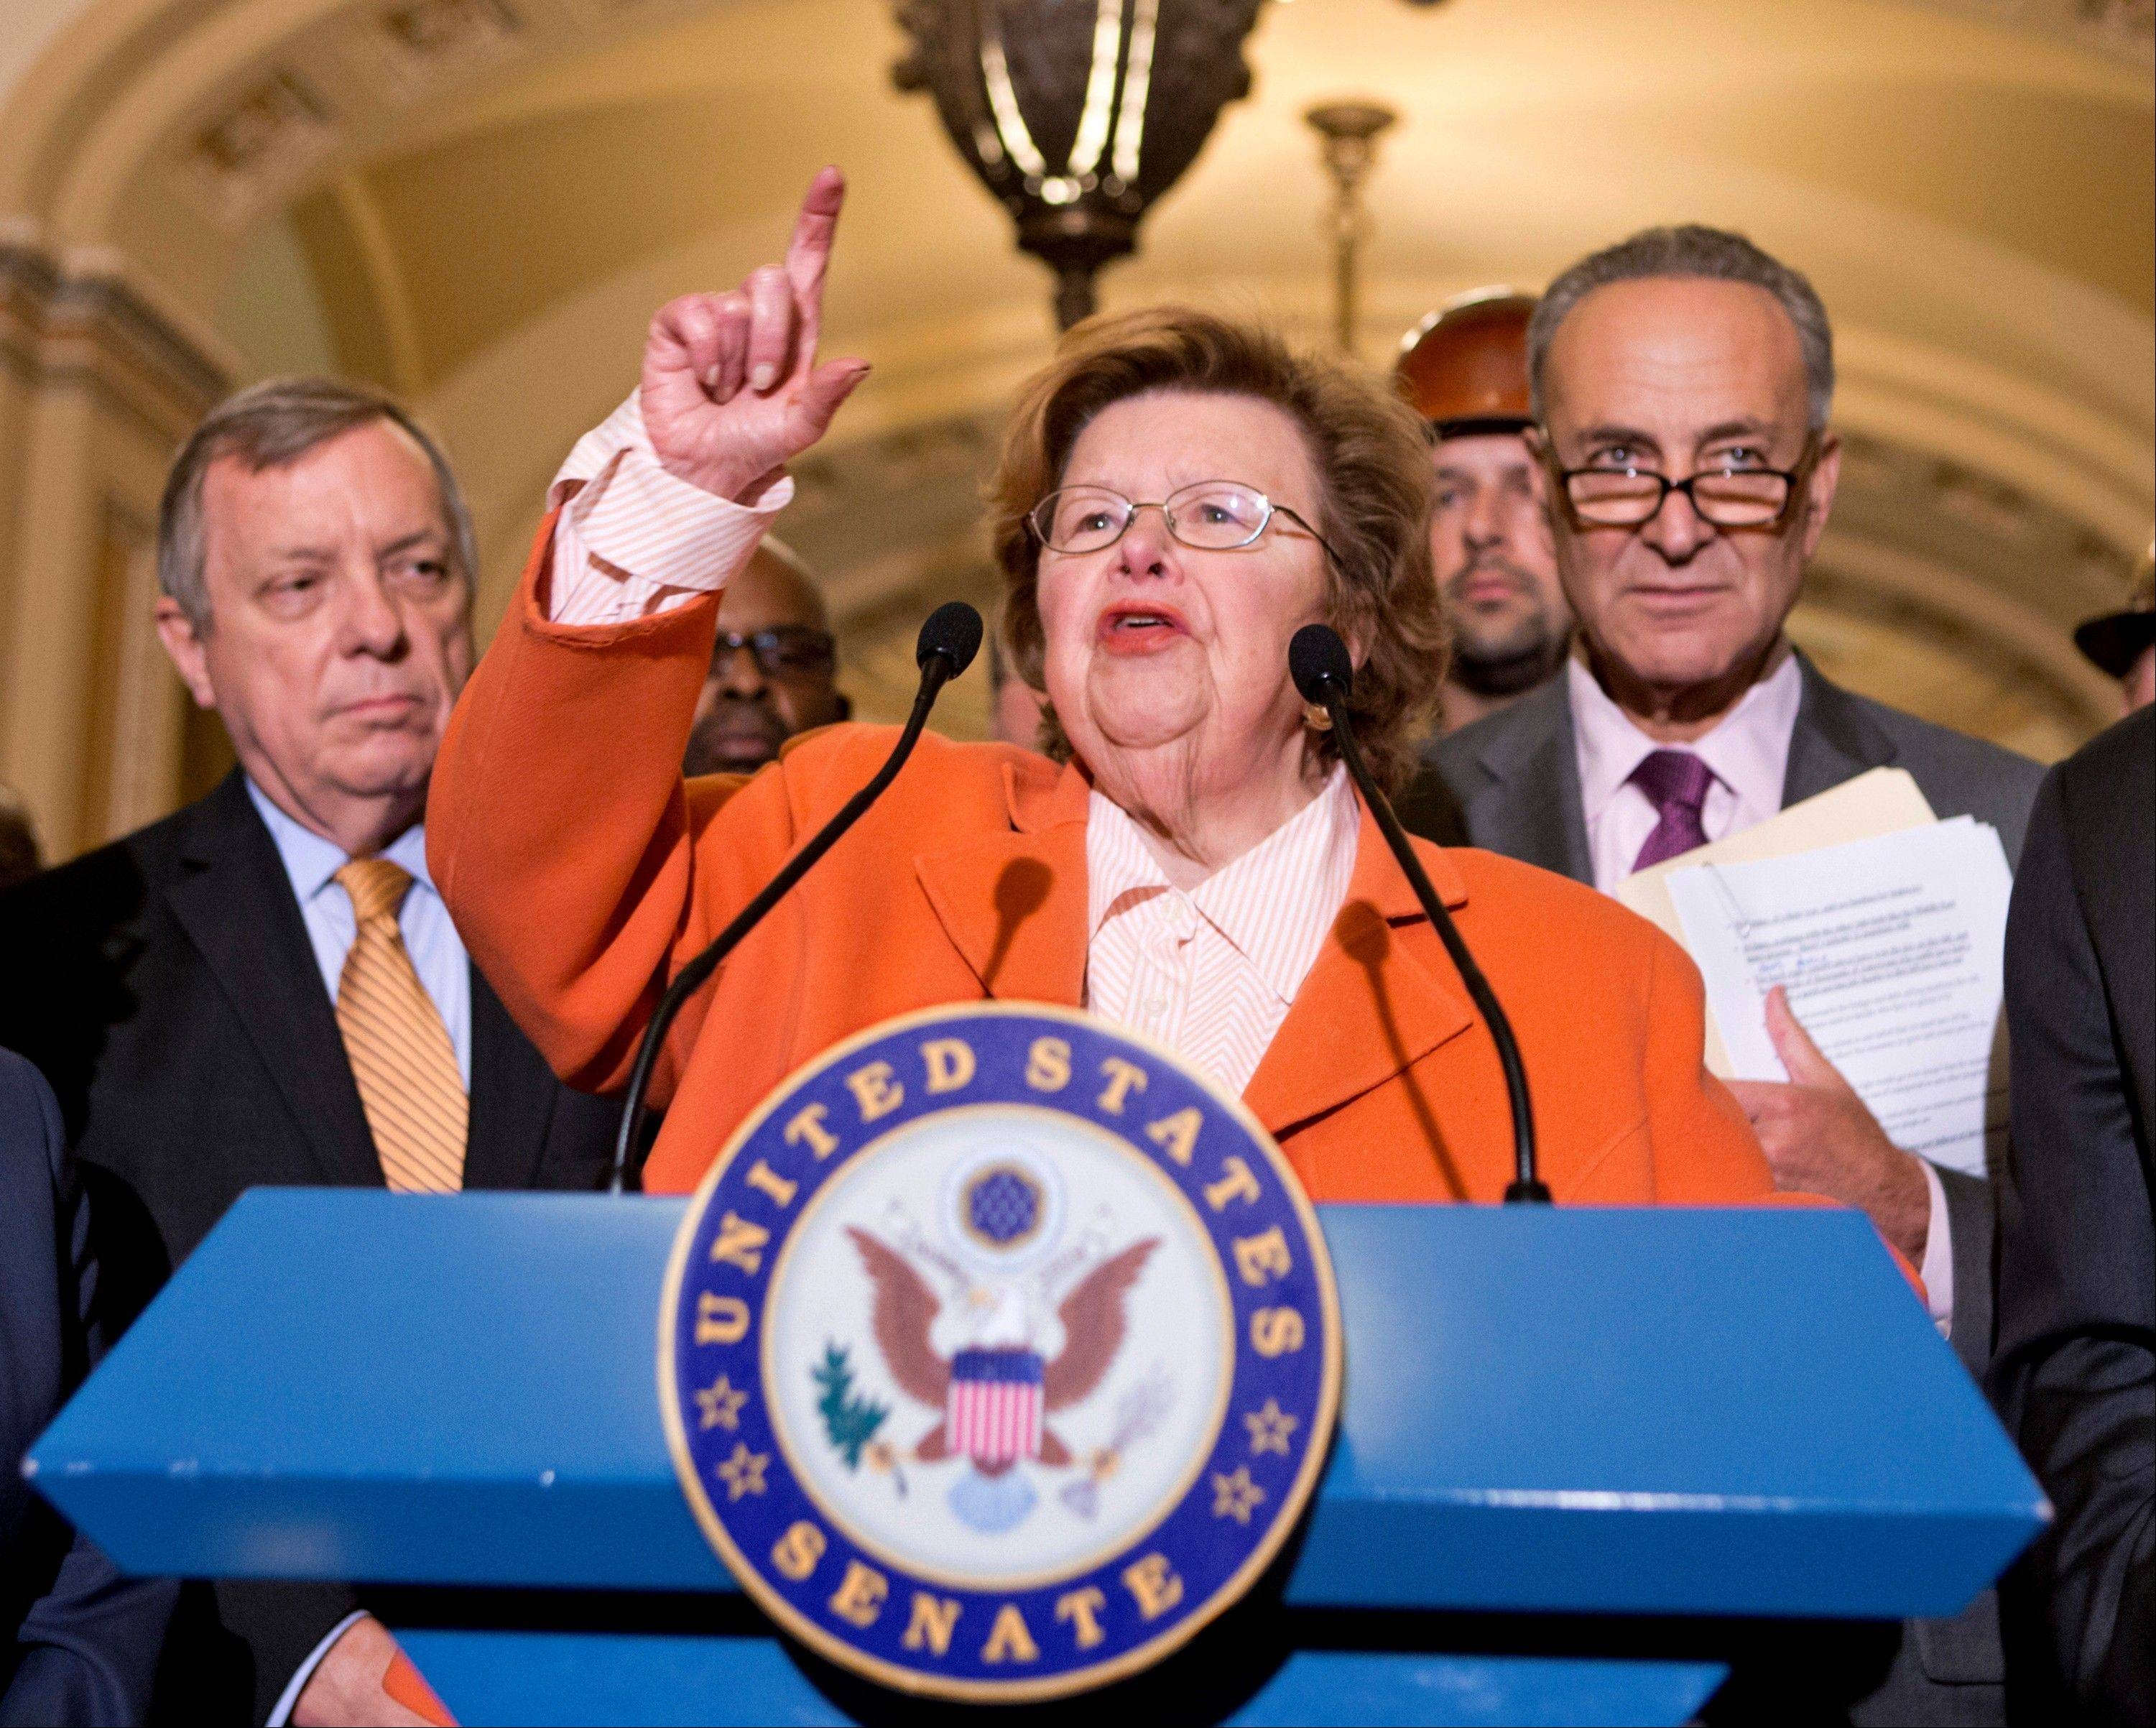 Senate Appropriations Committee Chair Barbara Mikulski of Maryland, flanked by Senate Majority Whip Richard Durbin of Illinois, left, and Sen. Charles Schumer, speaks on Capitol Hill in Washington.